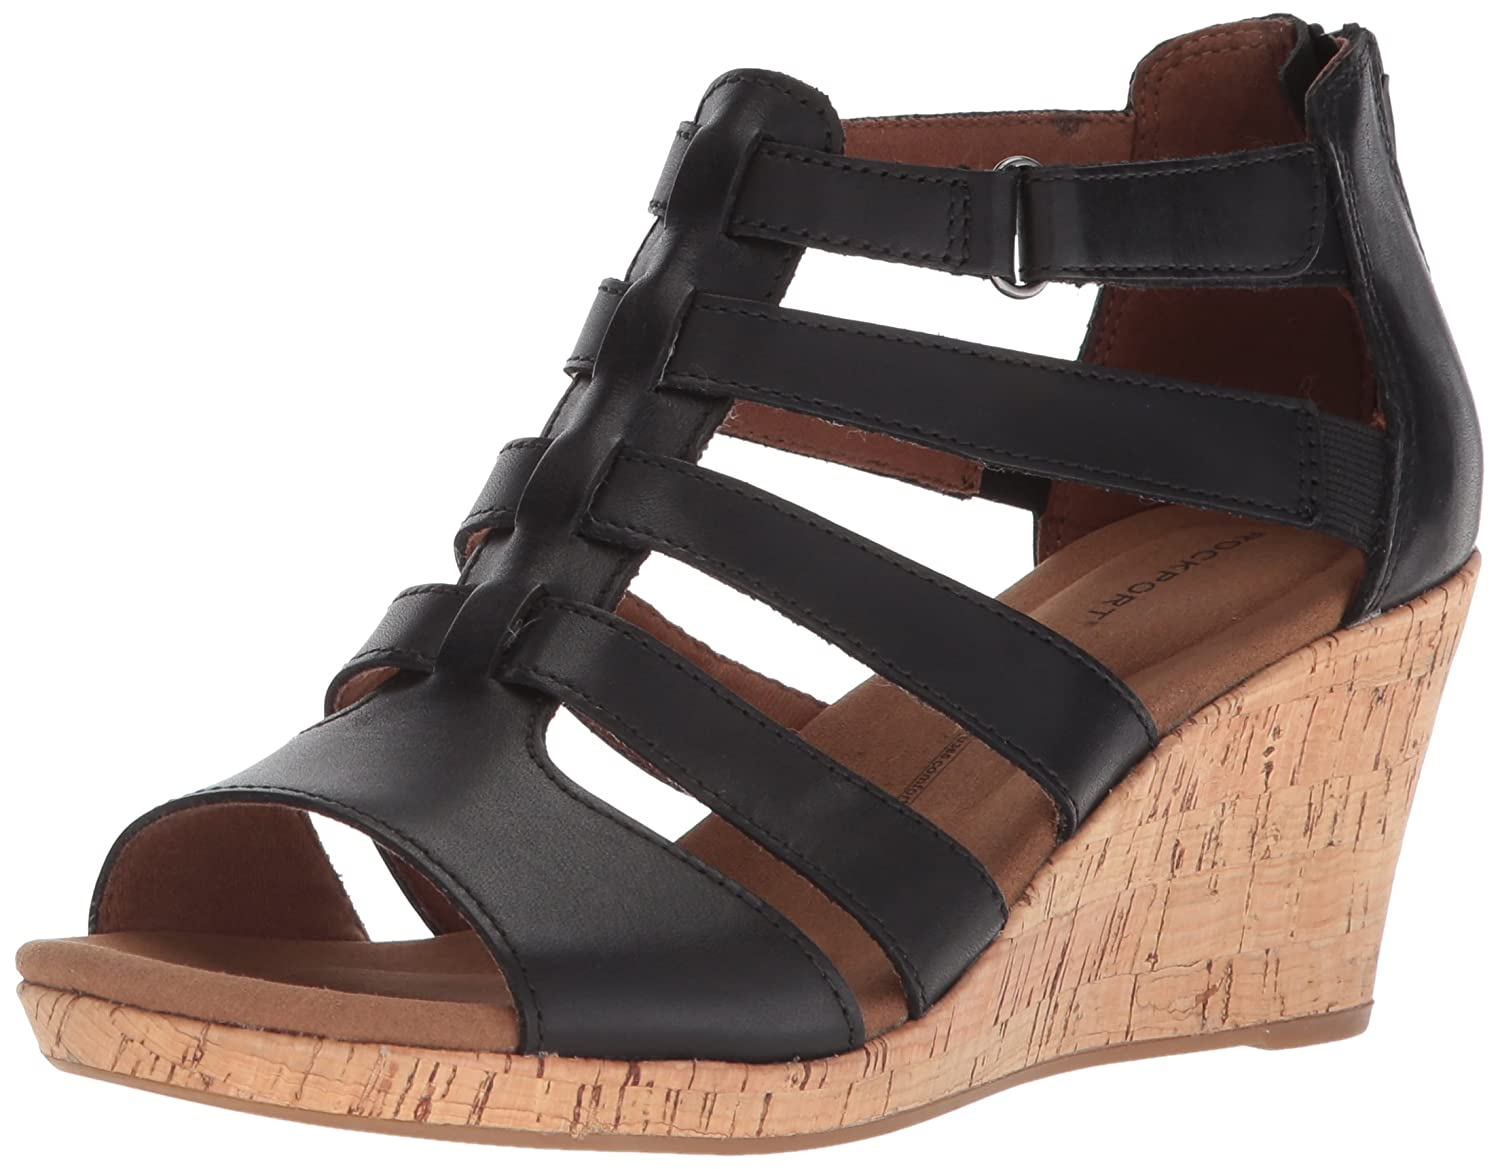 Black leather Rockport Women's Briah Gladiator Wedge Sandal